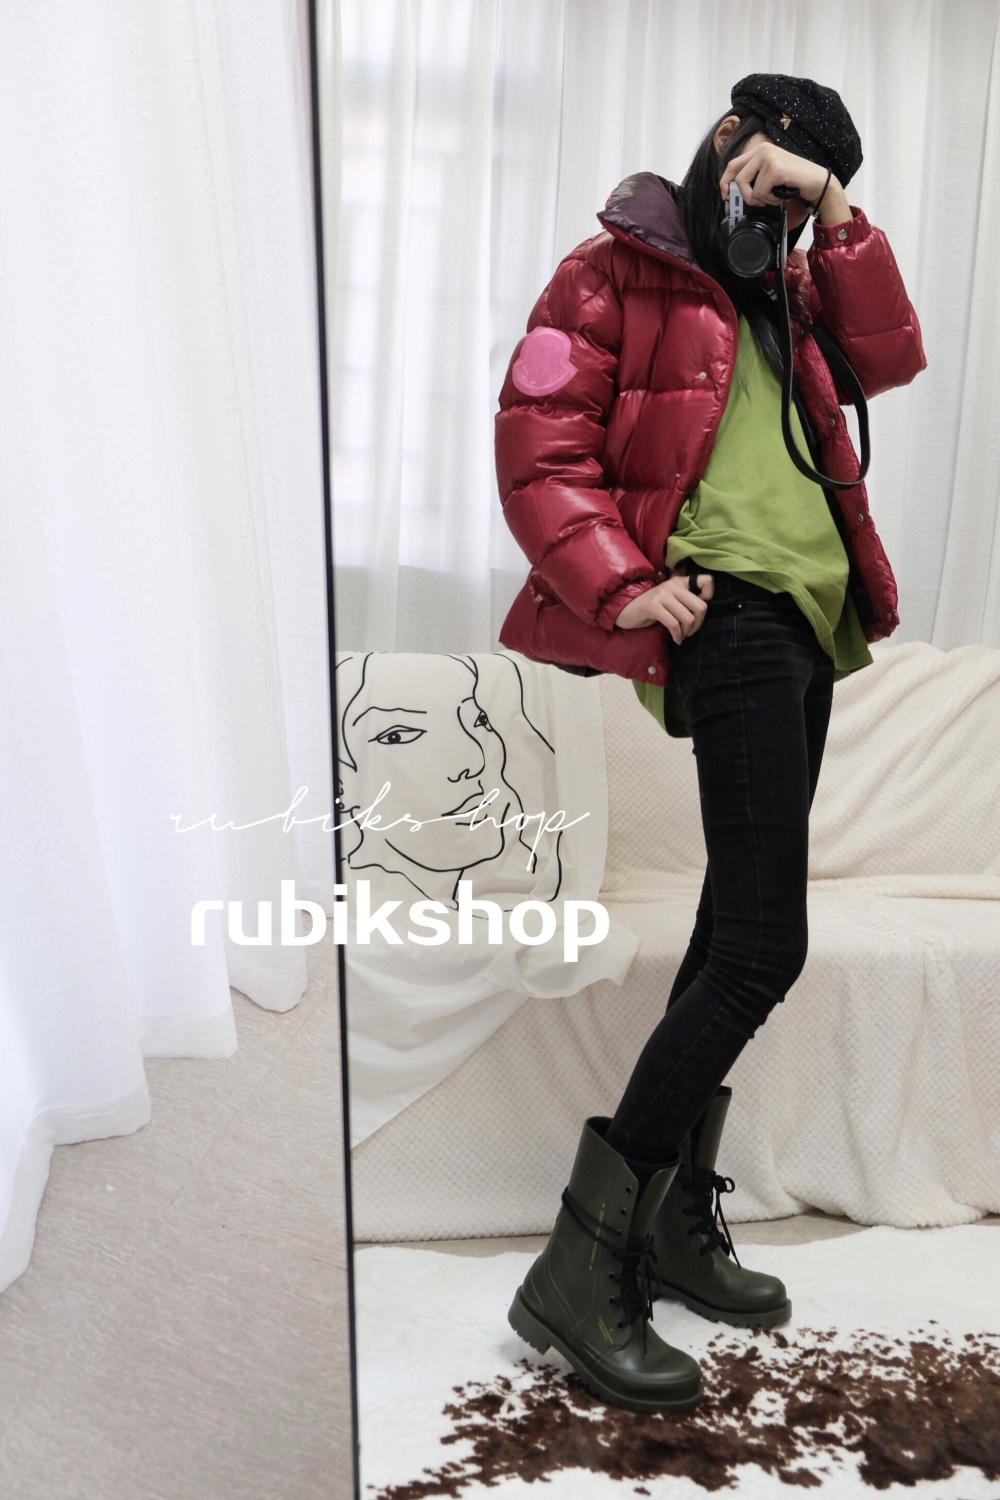 Rubikmonster two-way shouldered down jacket for warmth and love